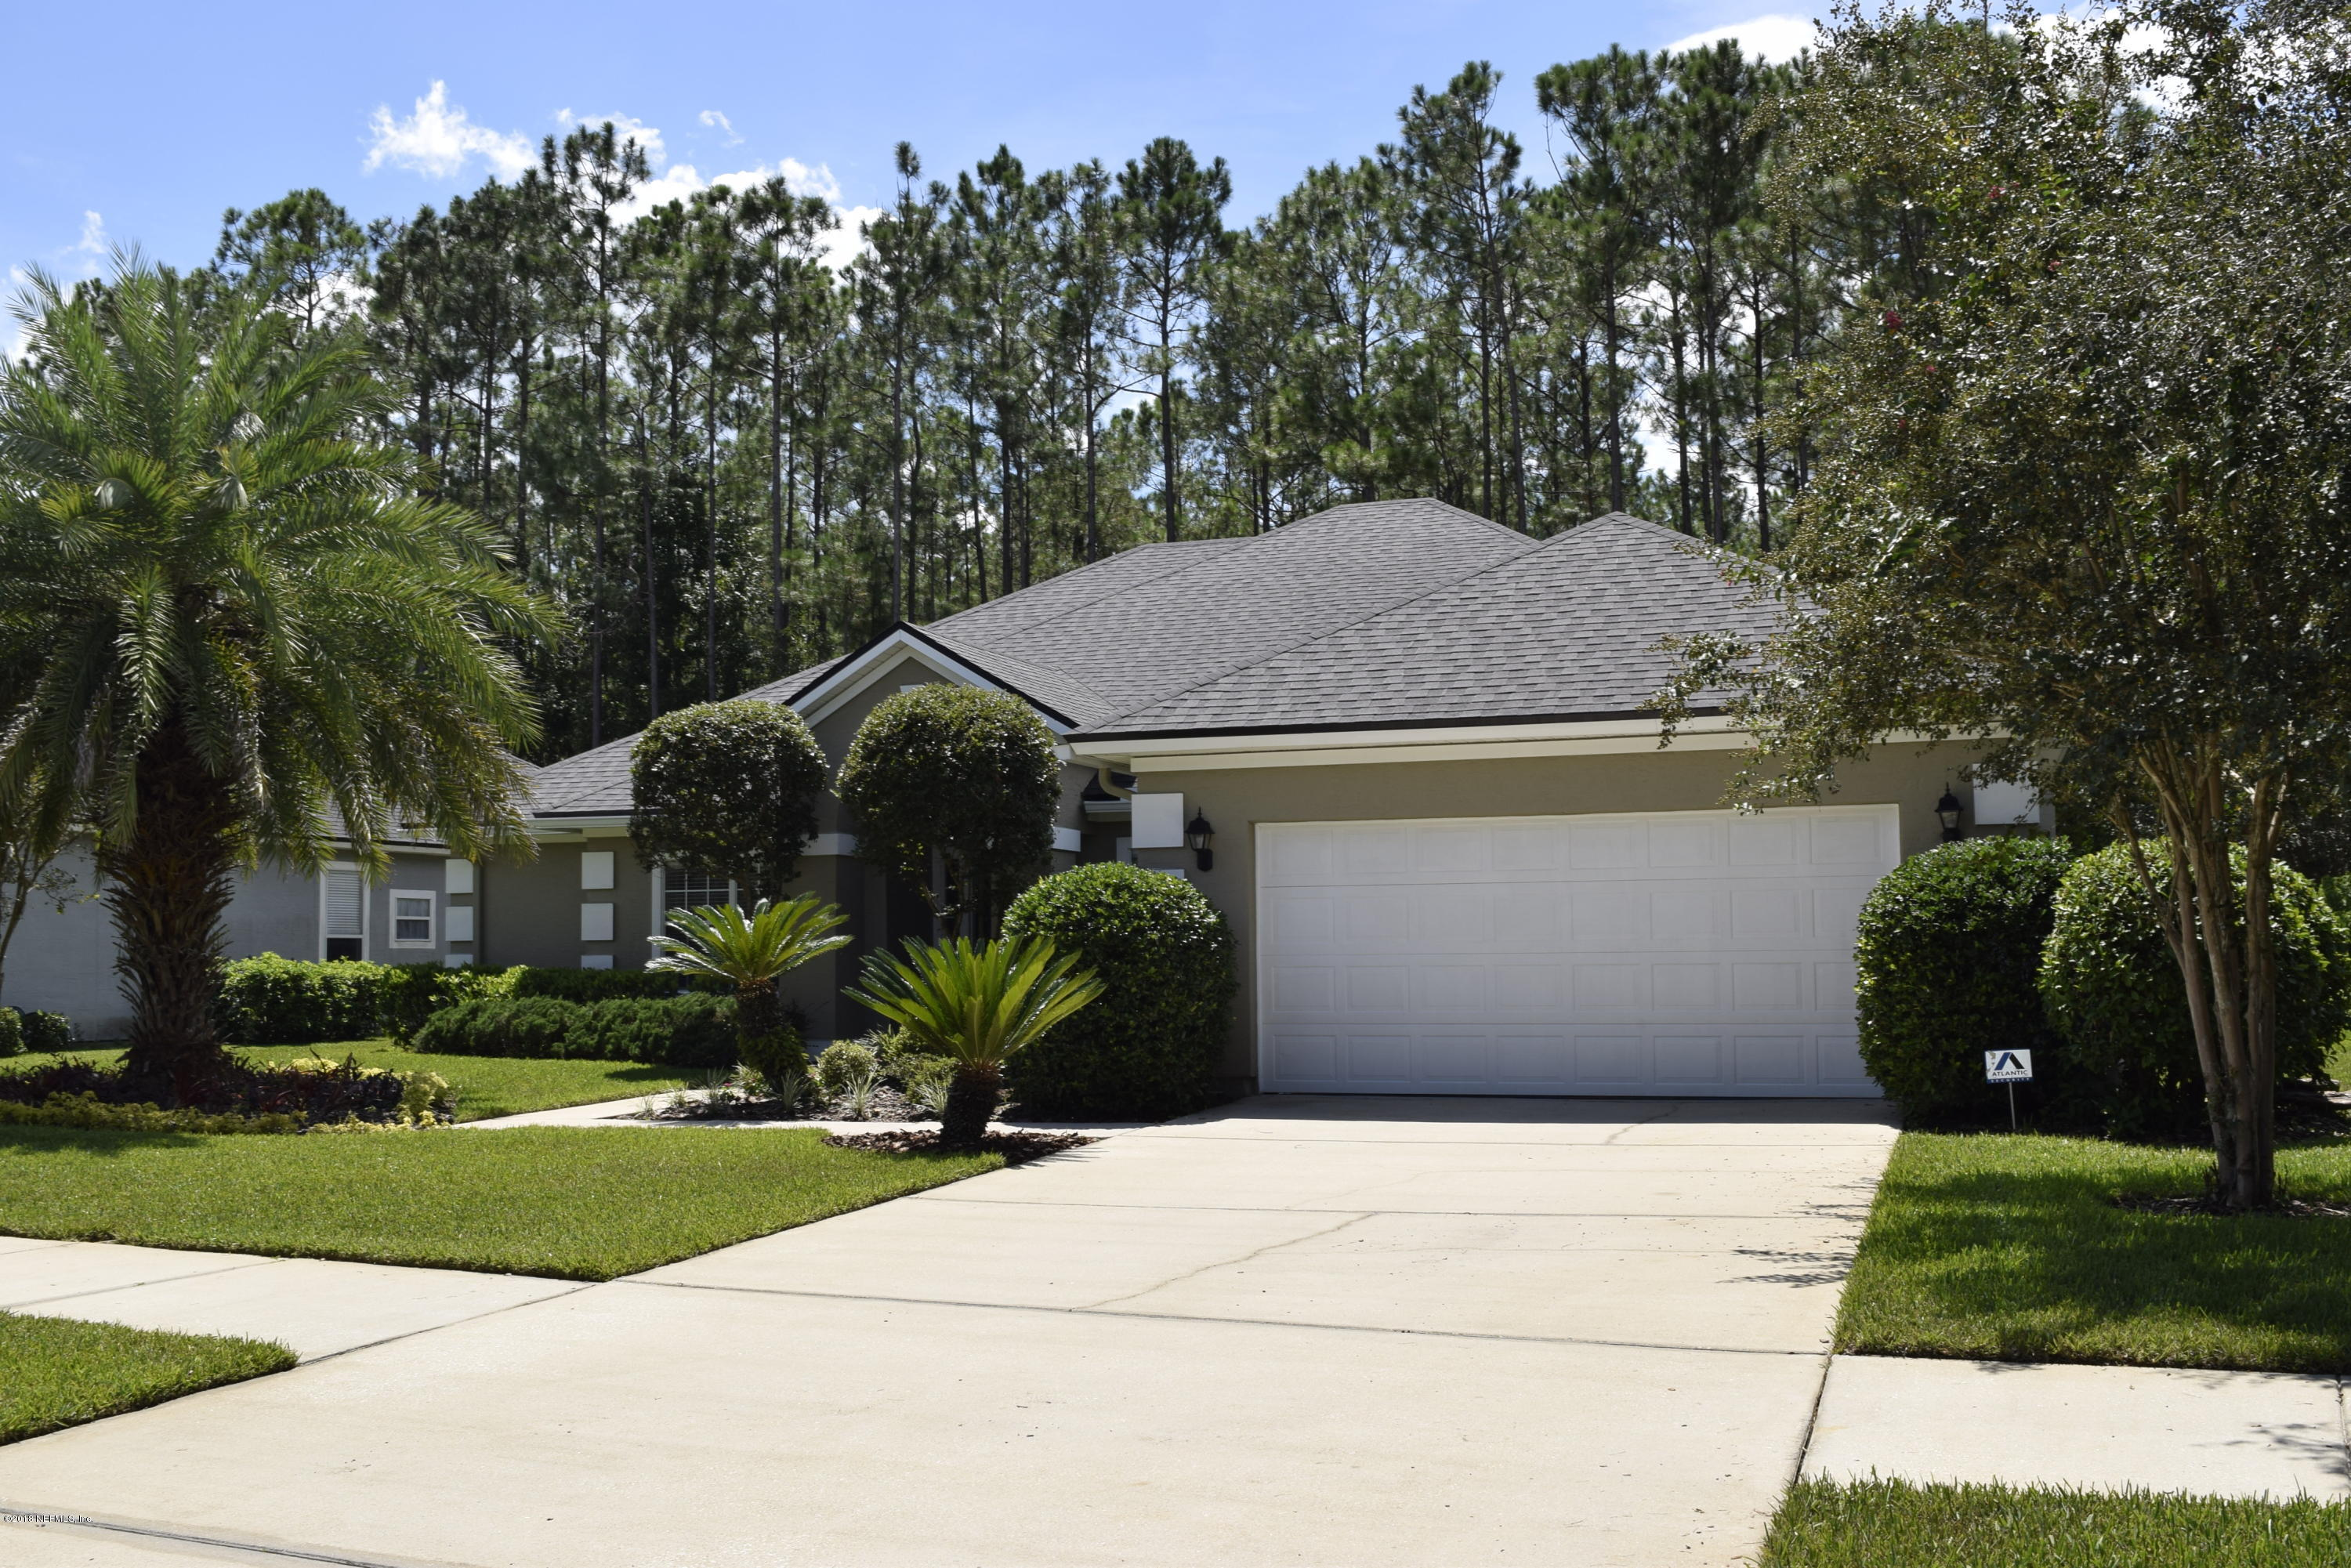 423 HAMPTON CLUB, ST AUGUSTINE, FLORIDA 32092, 3 Bedrooms Bedrooms, ,2 BathroomsBathrooms,Residential - single family,For sale,HAMPTON CLUB,953477